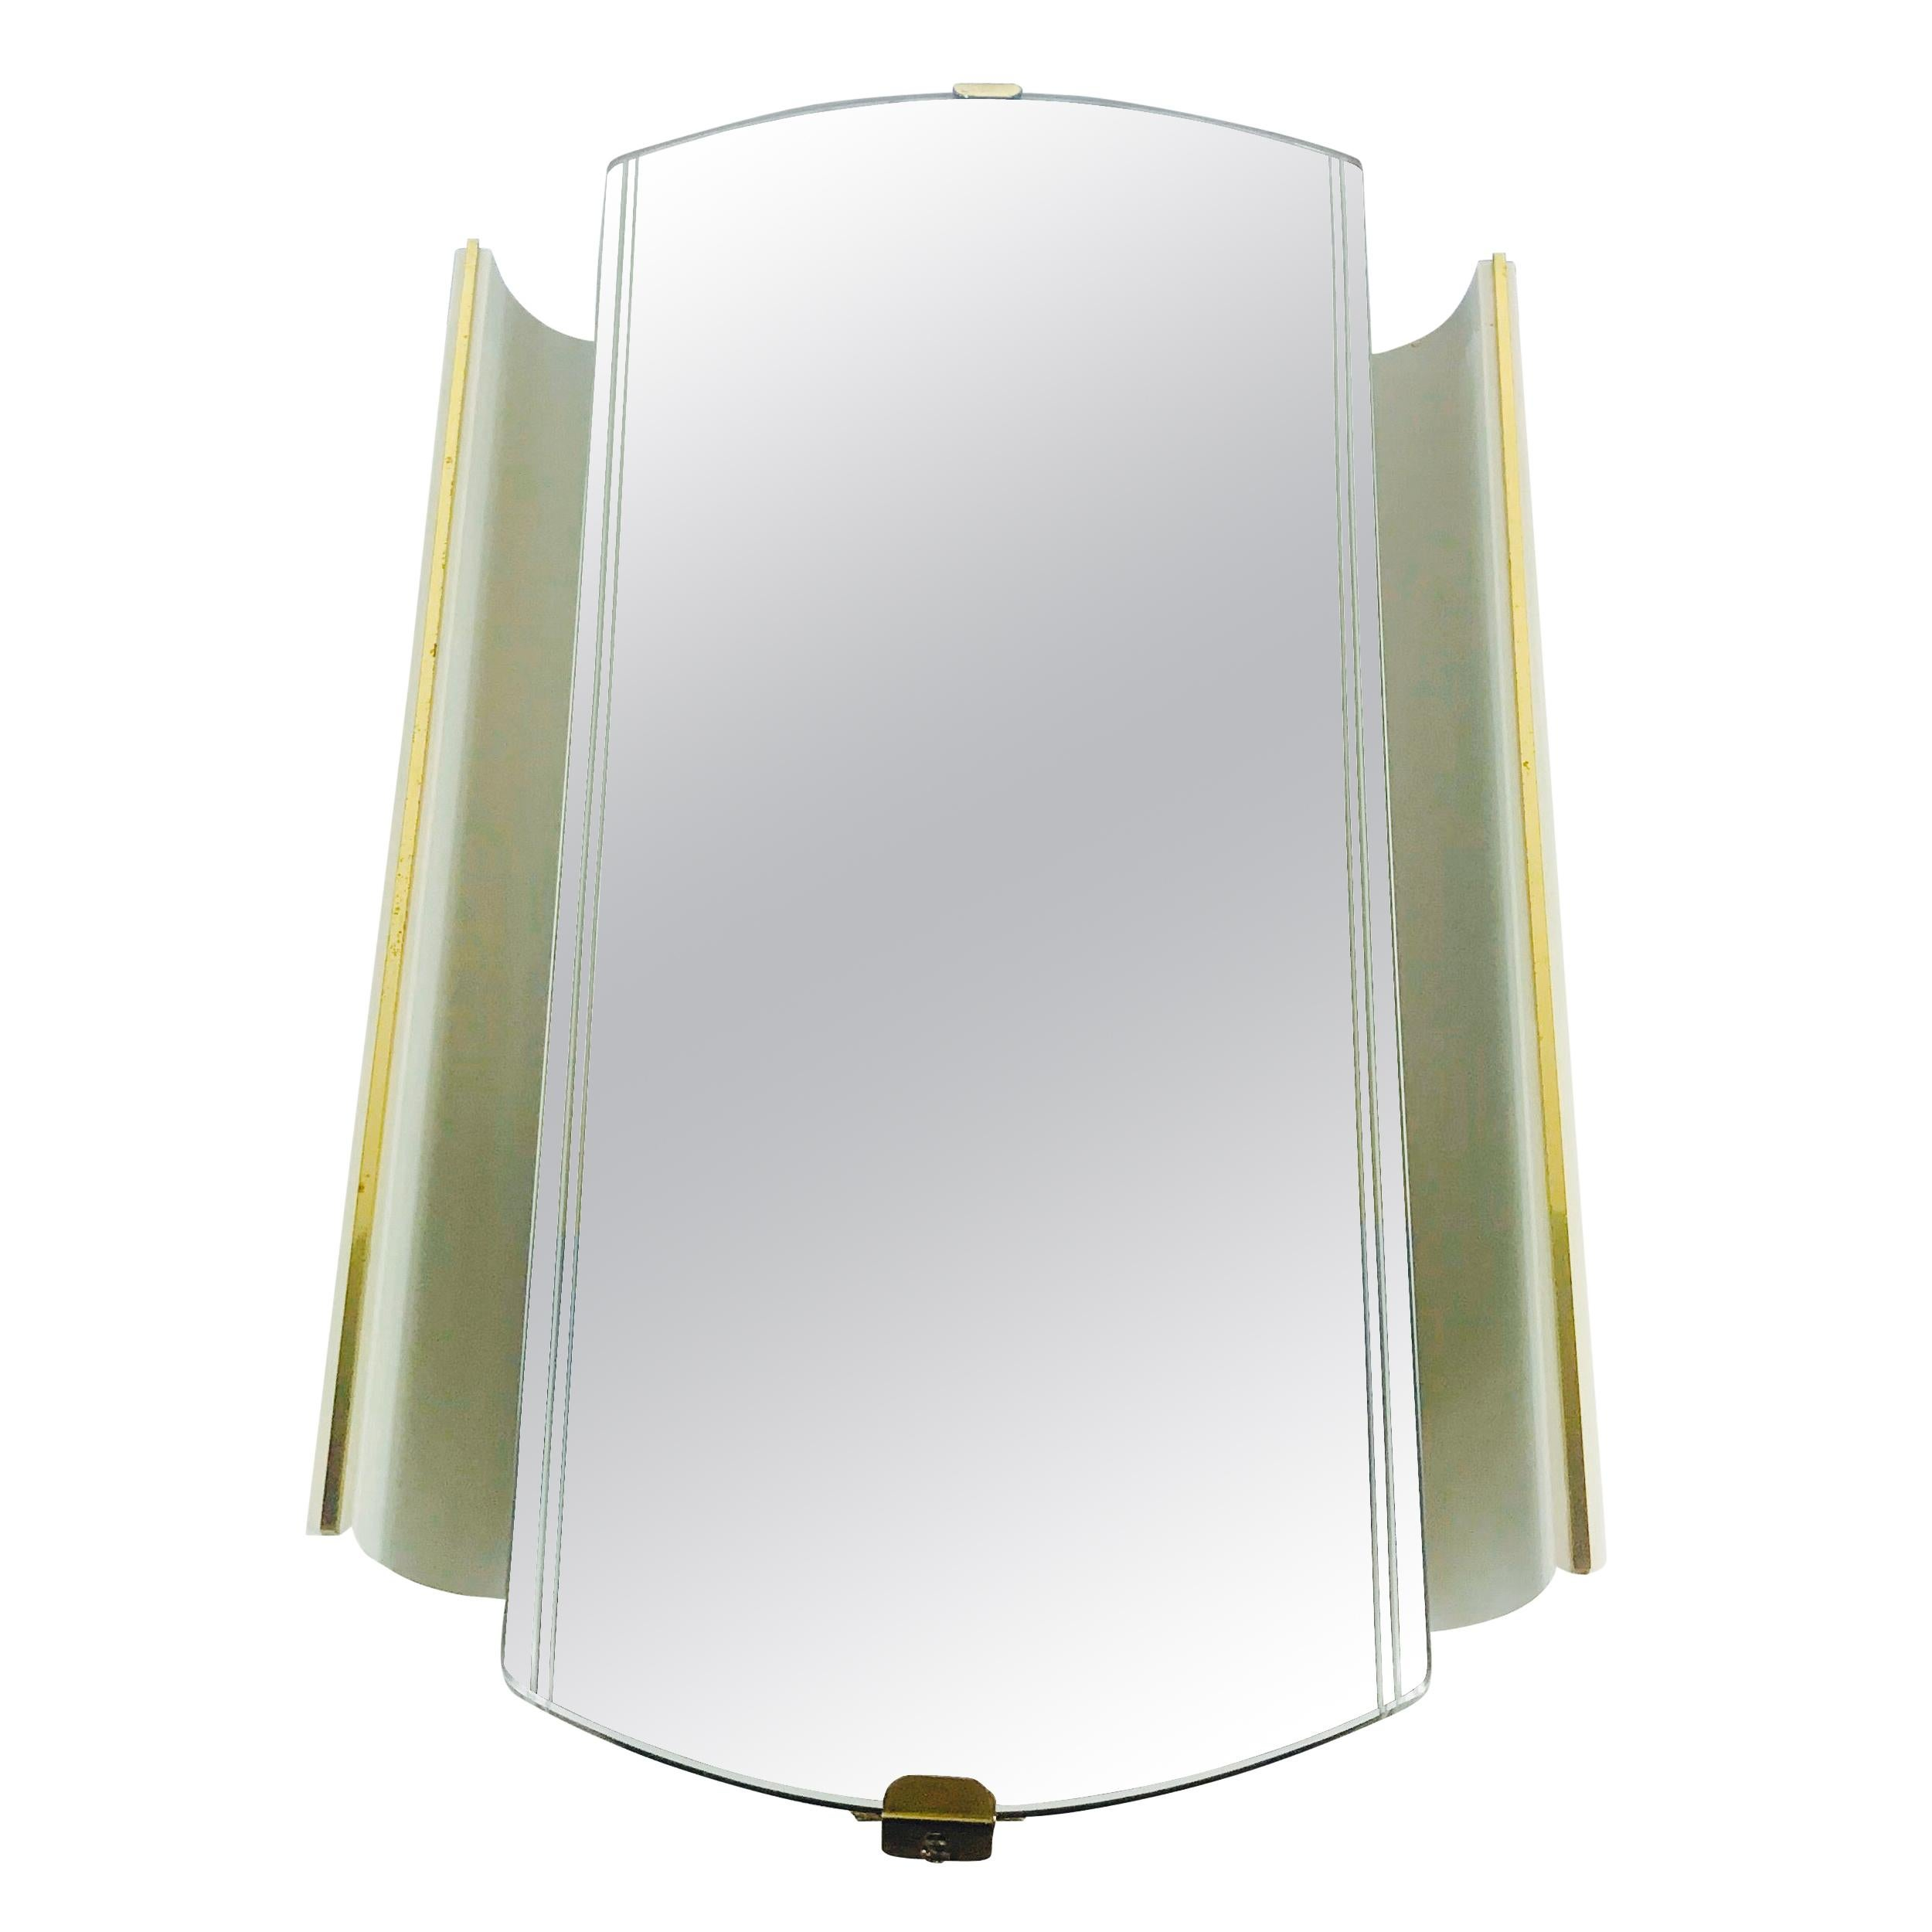 Midcentury Illuminated Mirror from Ernest Igl for Hillebrand Lighting, 1950s